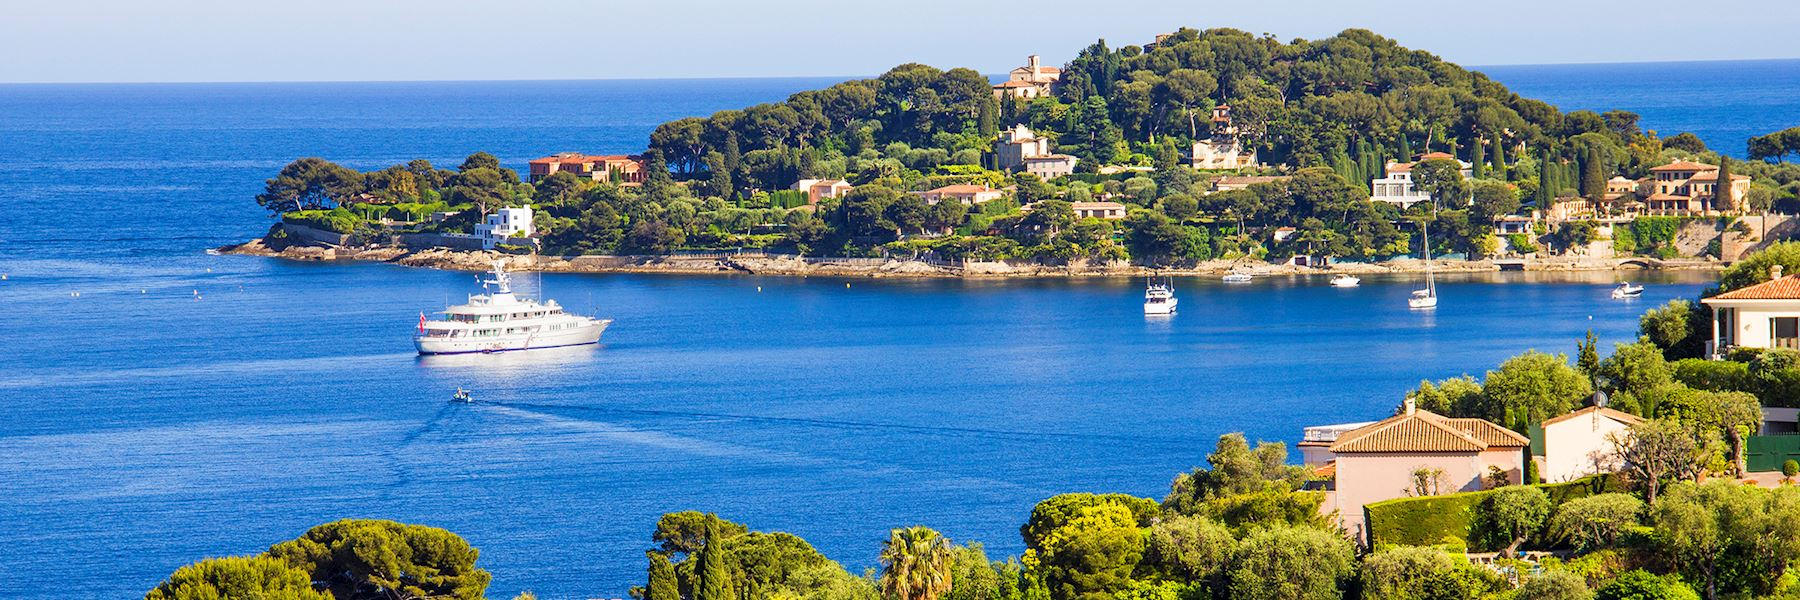 Tailor-made vacations to Saint-Jean-Cap-Ferrat | Audley Travel